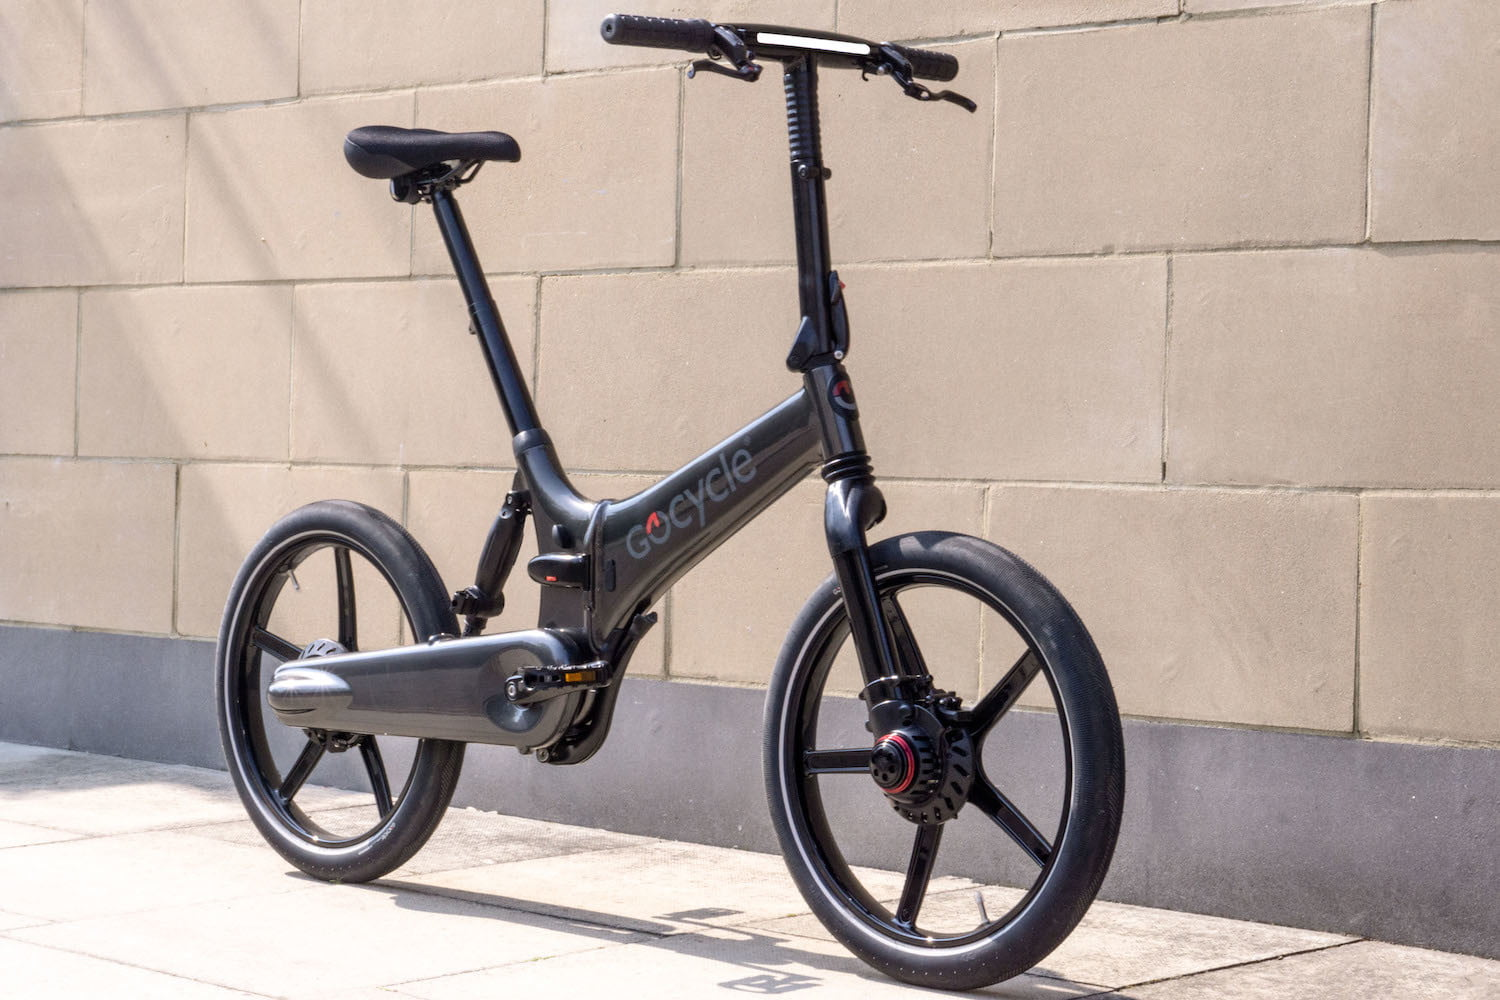 gocycles new gxi electric bike can fold away in a mere 10 seconds gocycle 1